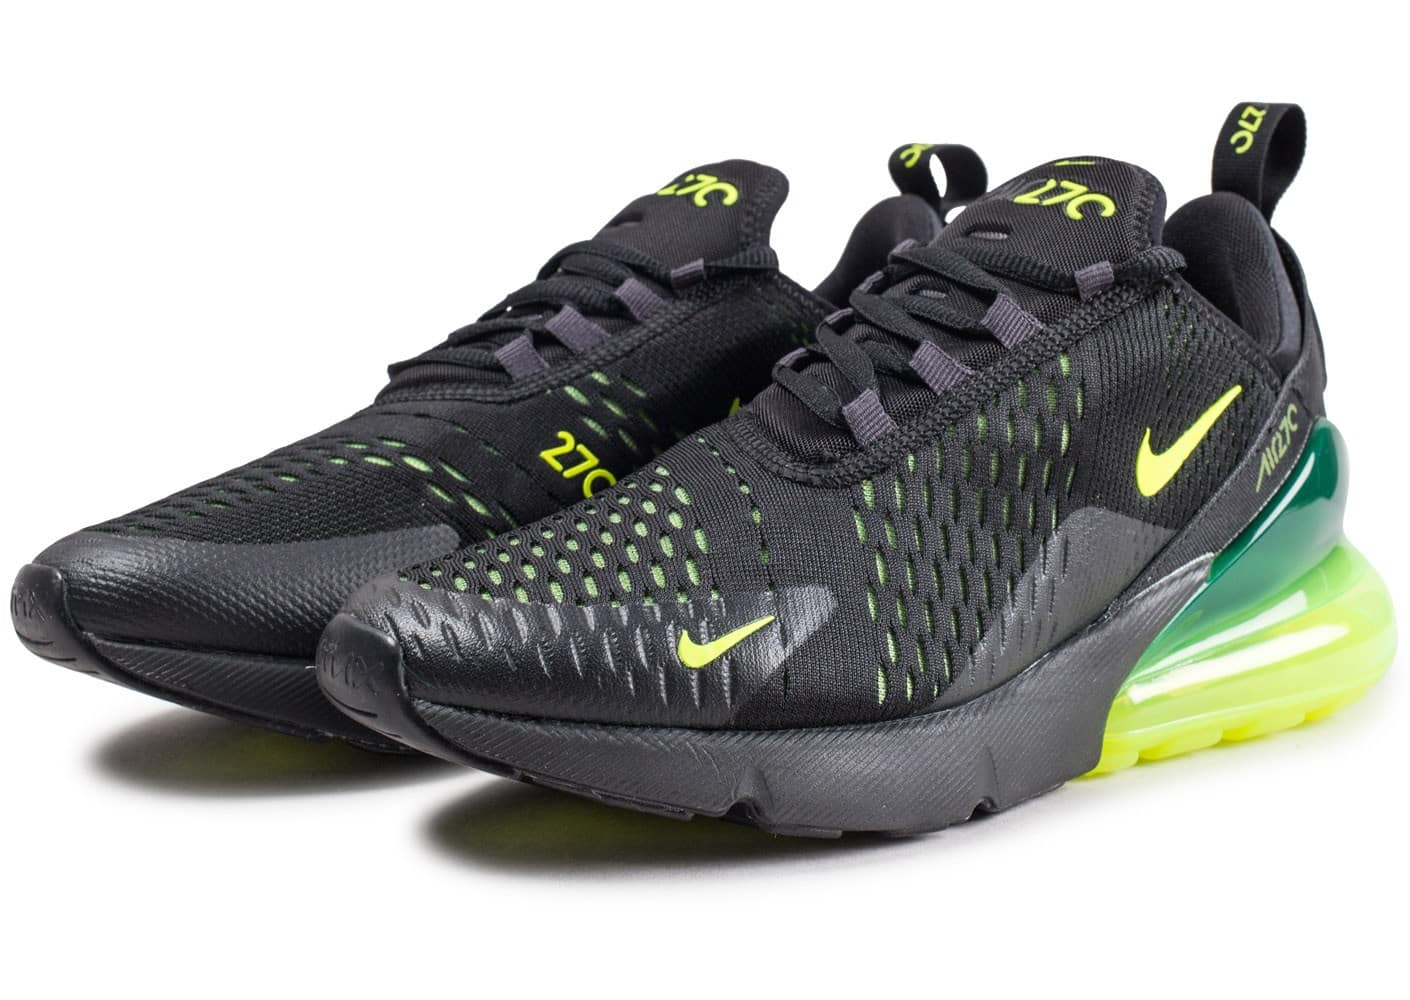 Nike Air Max 270 ''Black Volt'' Sneaker Style